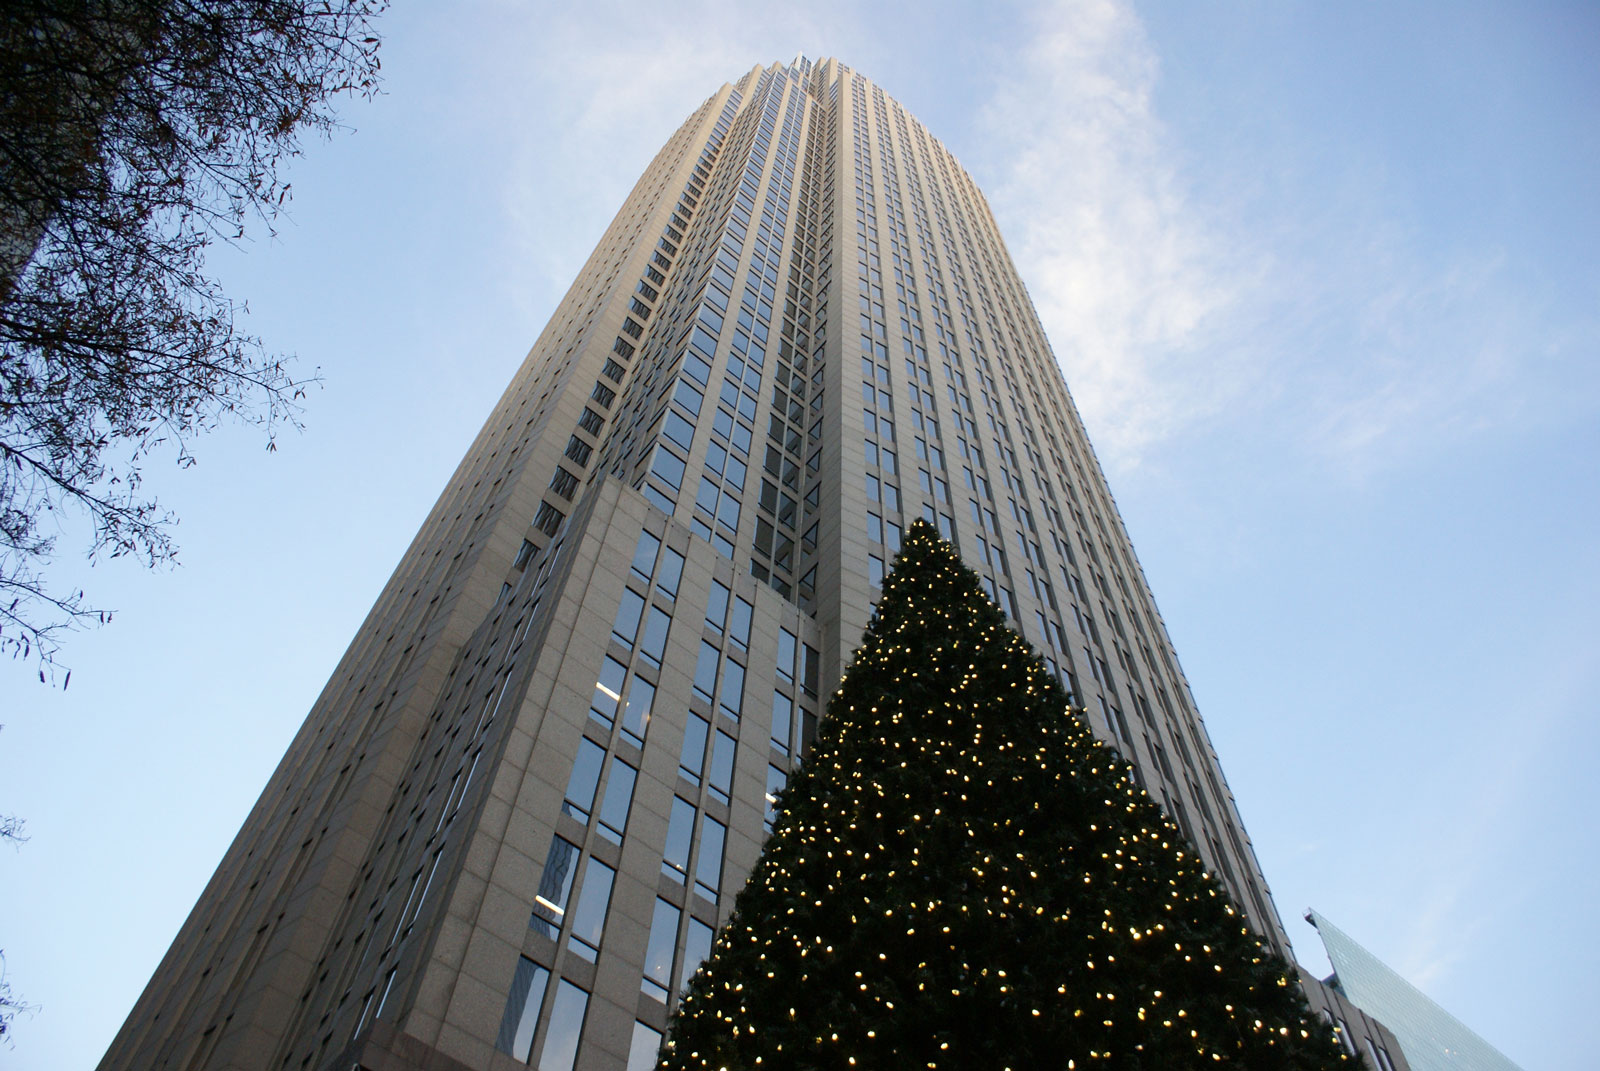 Christmas tree in Uptown Charlotte